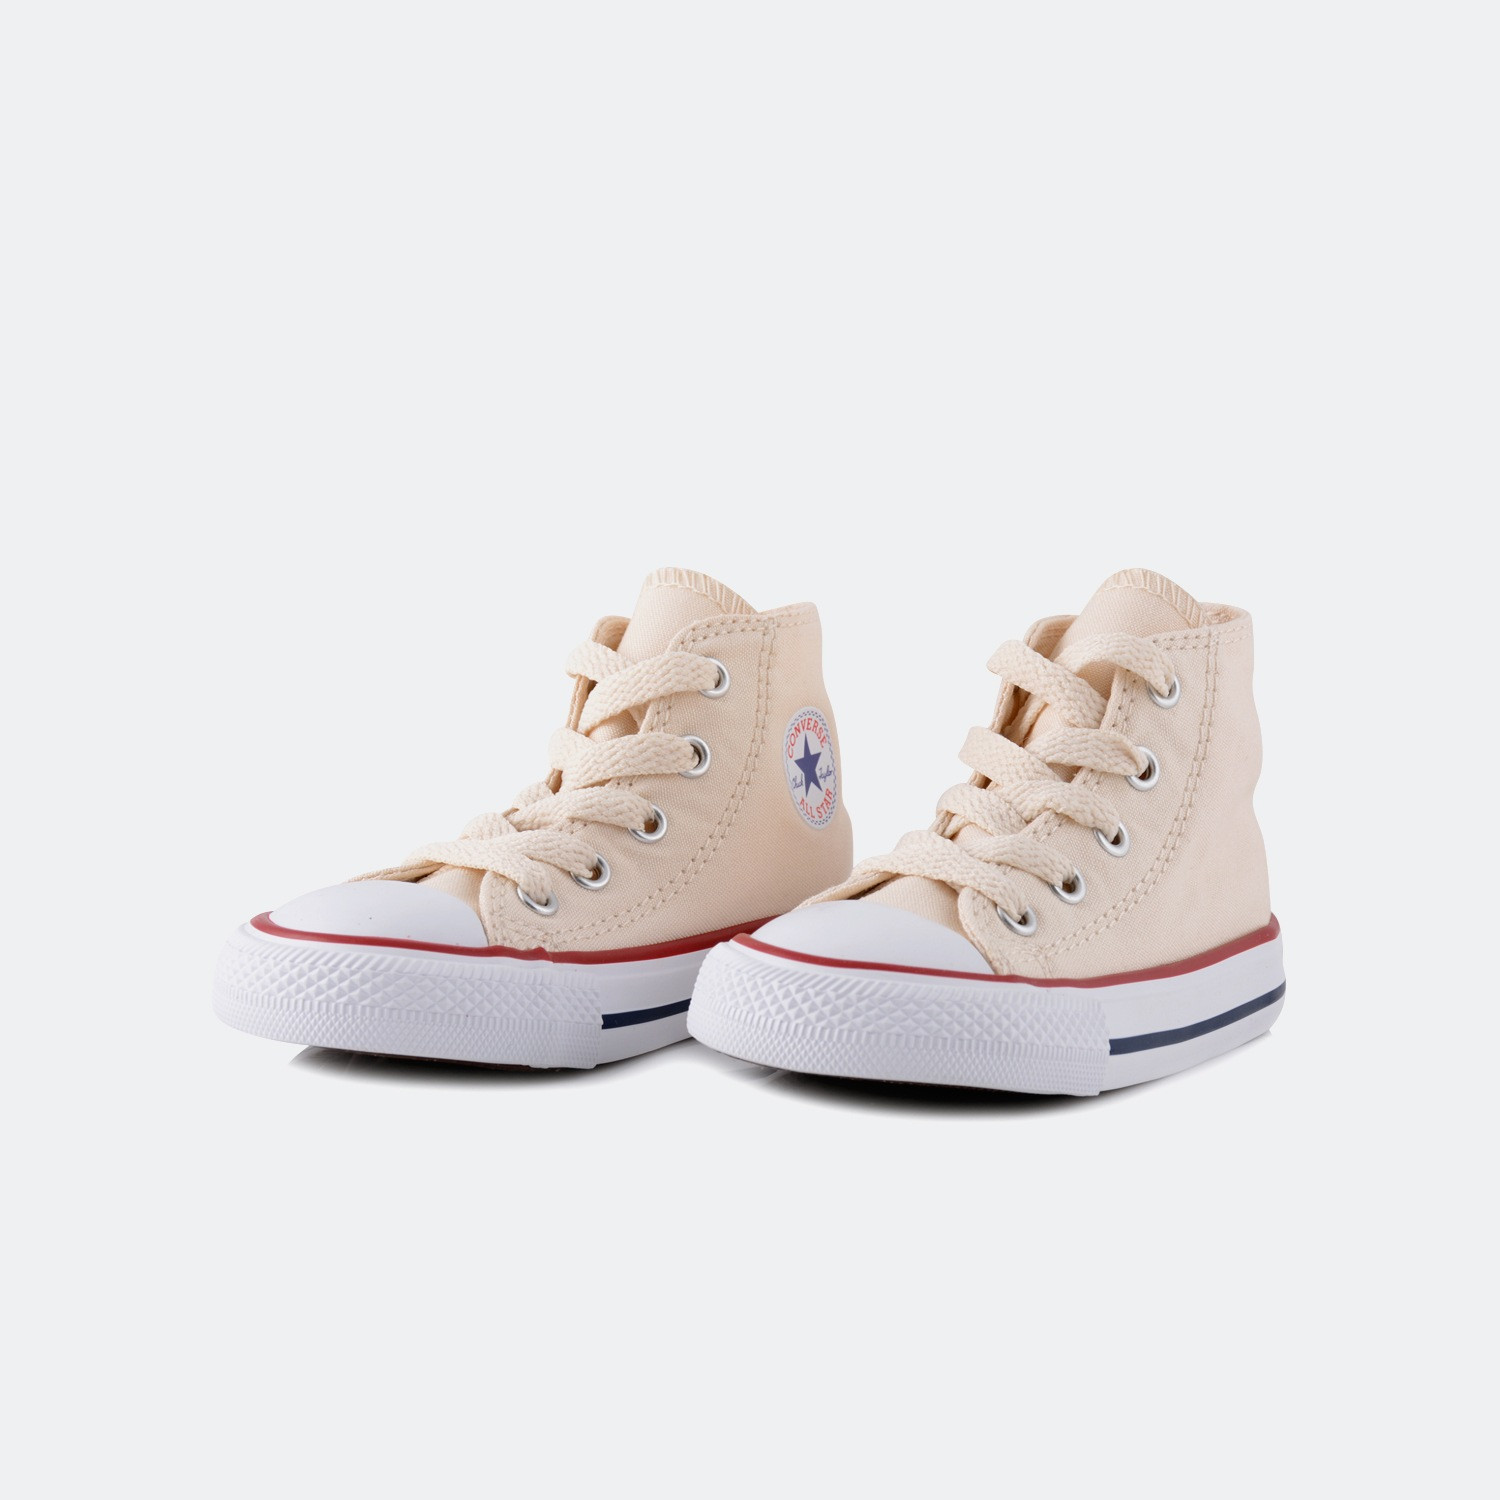 Converse Chuck Taylor All Star Hi | Βρεφικά Μποτάκια (9000005700_3235)